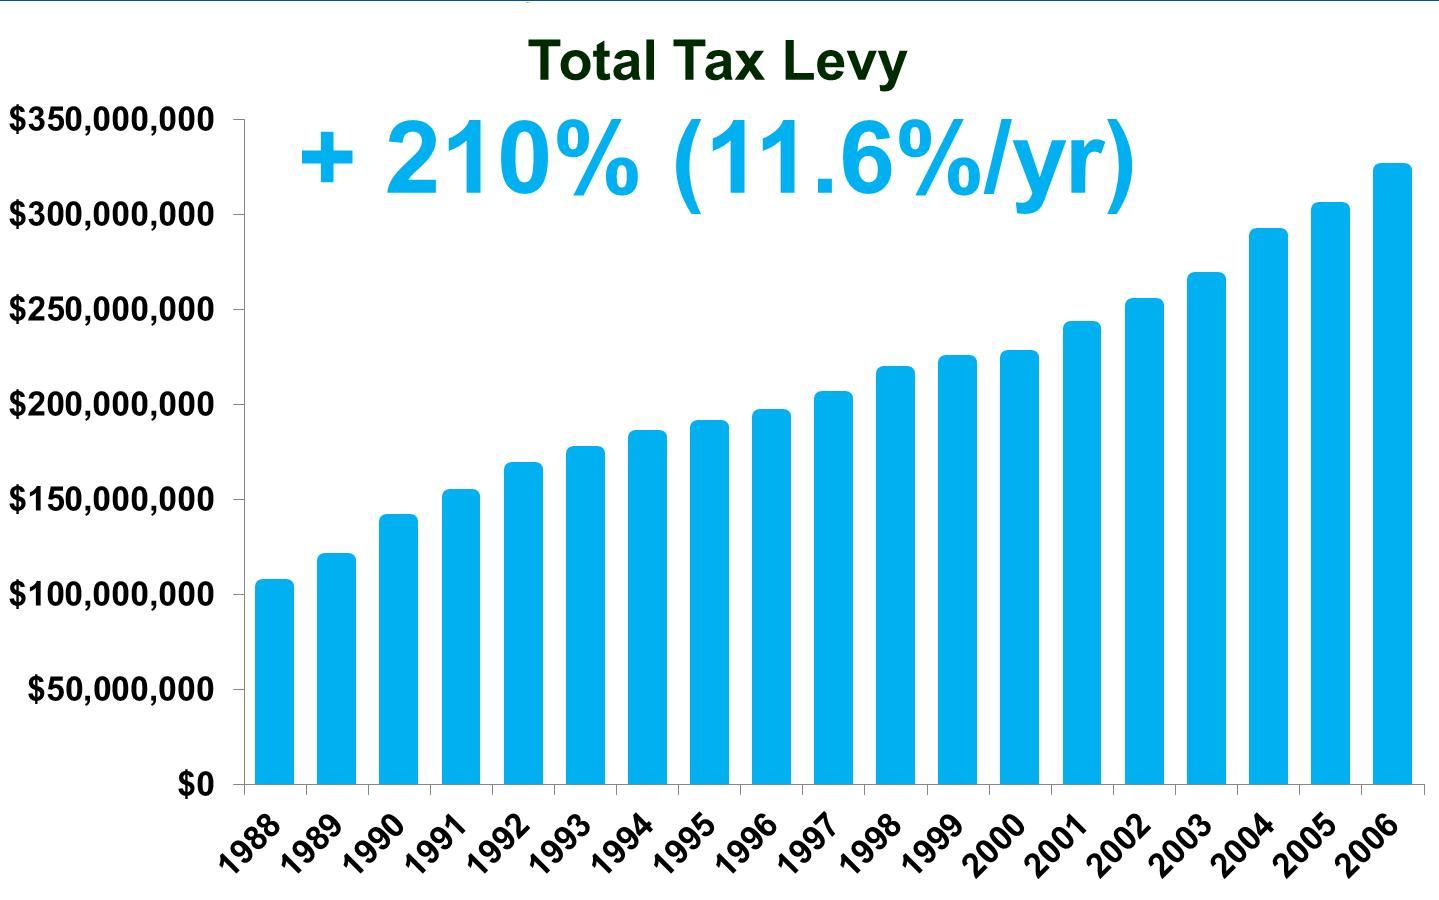 Mulvale raised the tax levy an average of 12% a year for 18 years